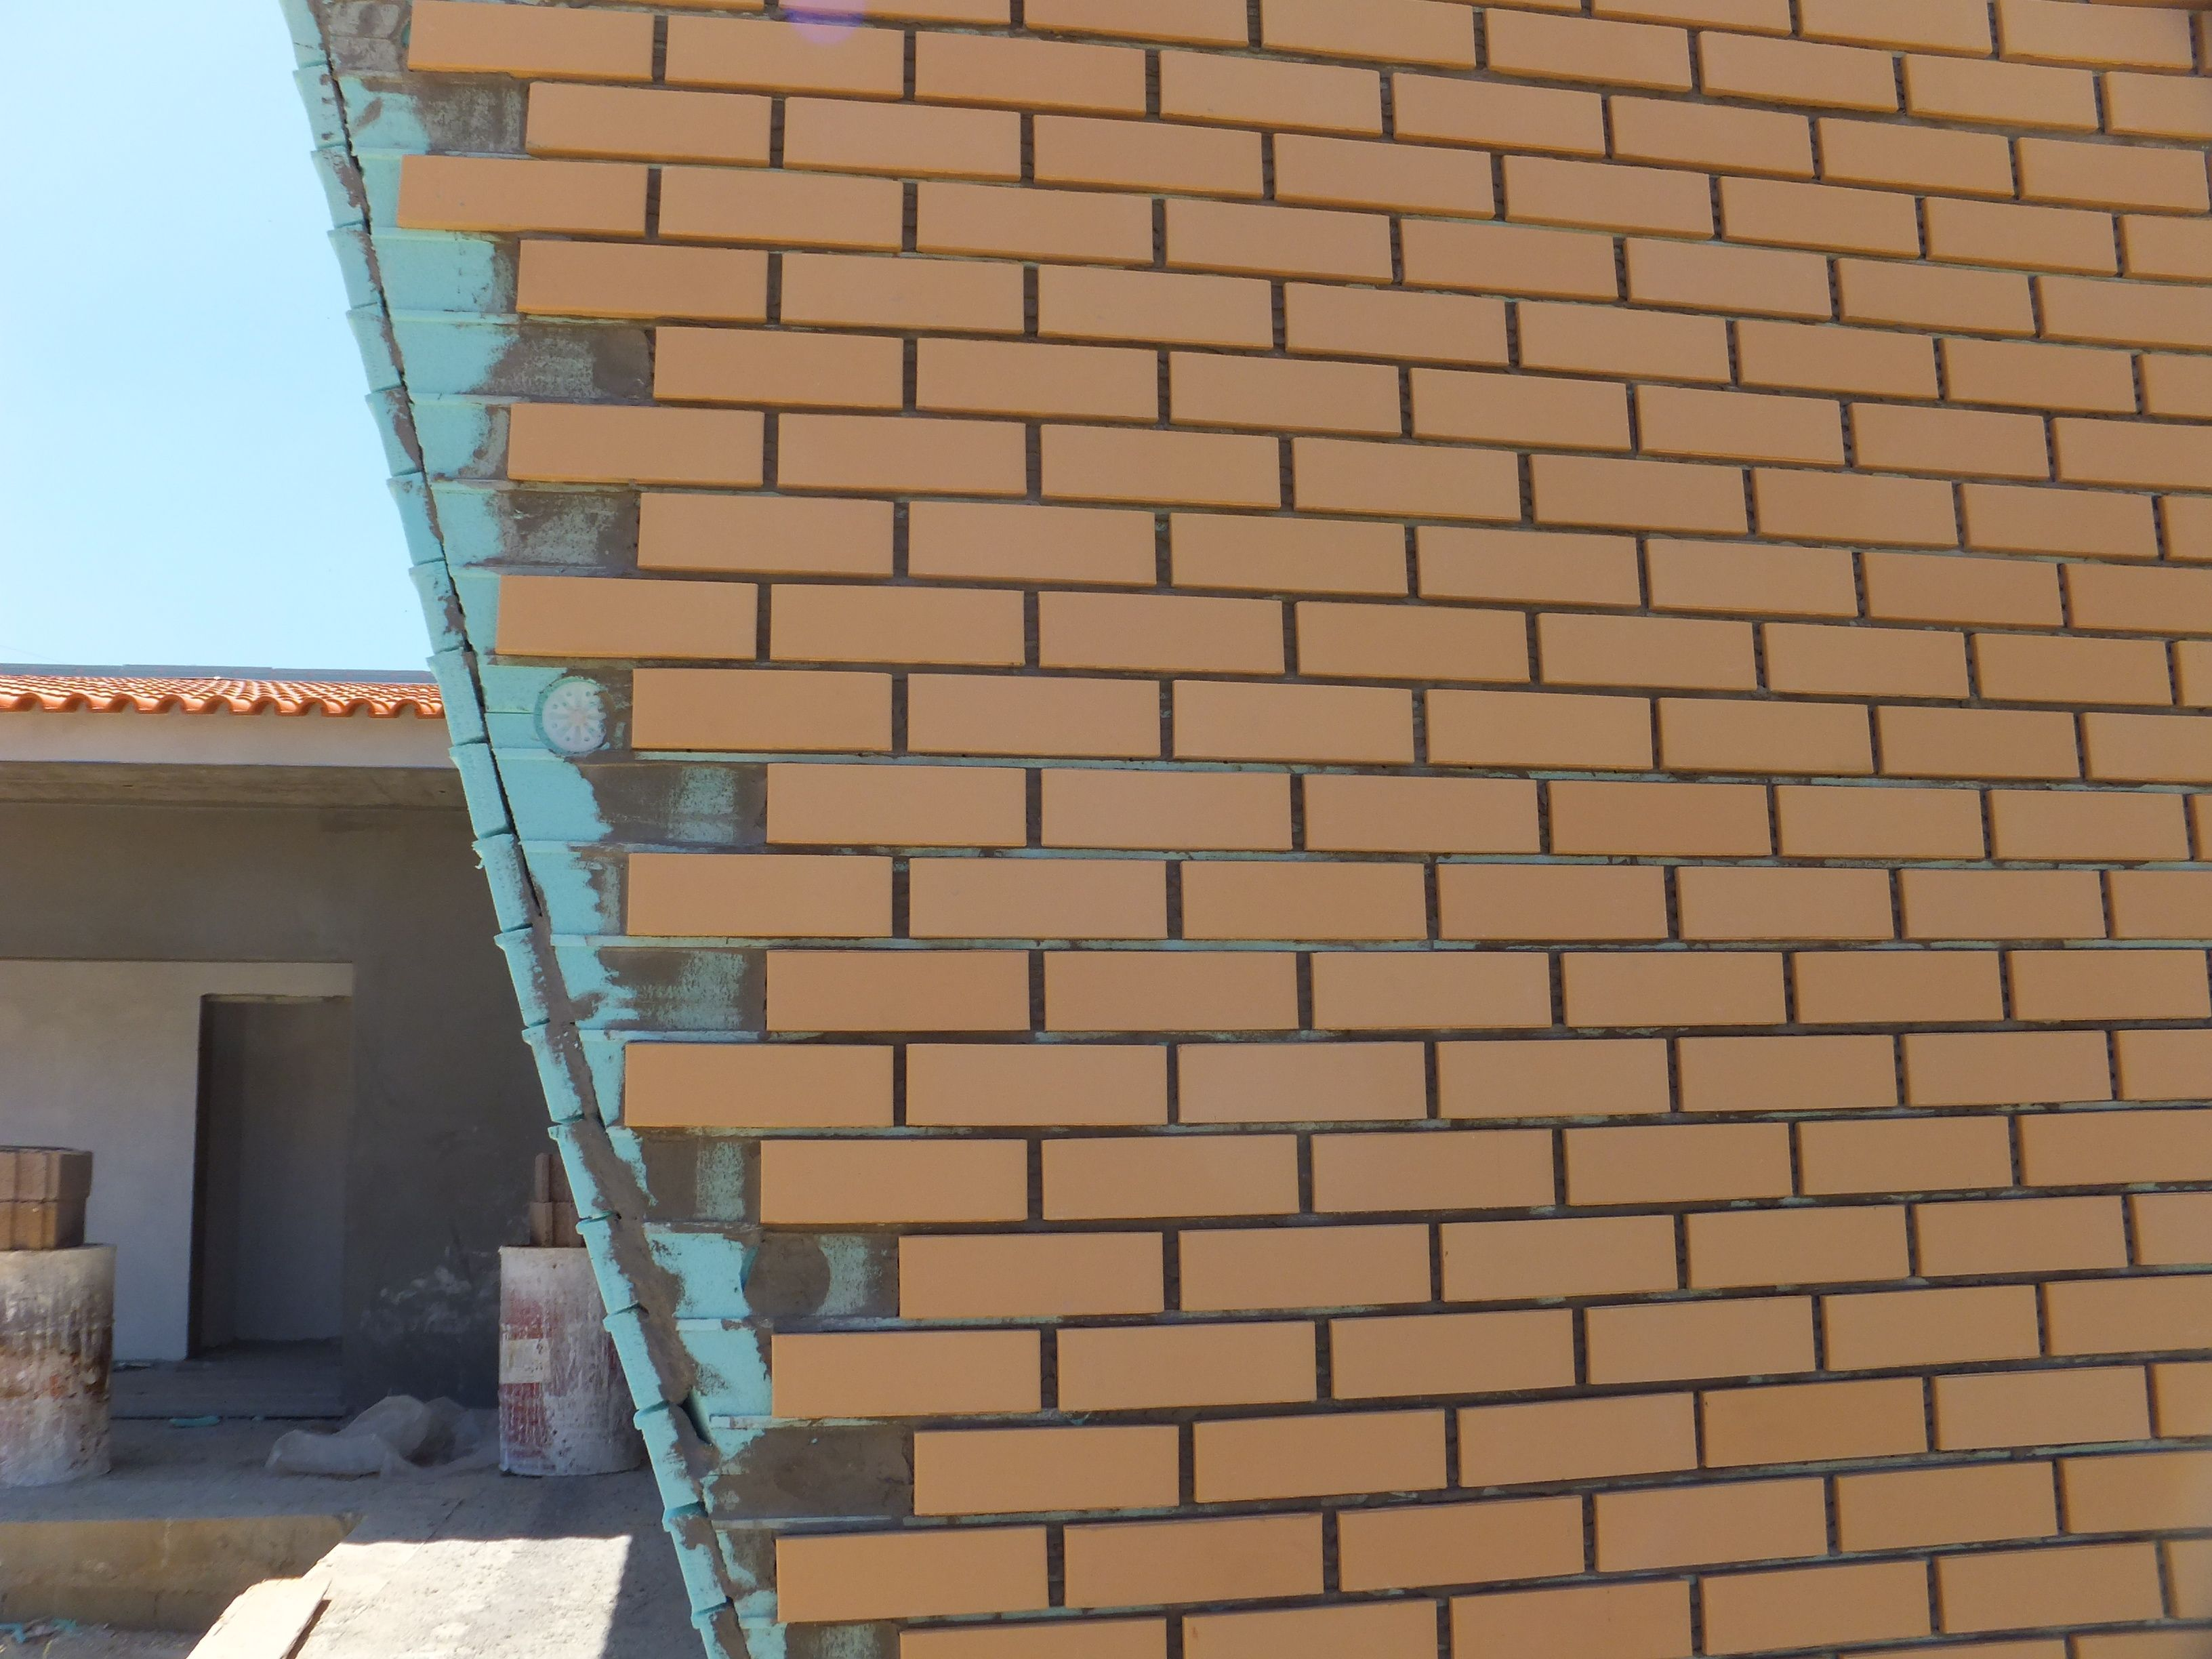 Candiwall Brick Cladding System Supplied By Brick Clad In The Uk Grey Brick Buff Brick Red